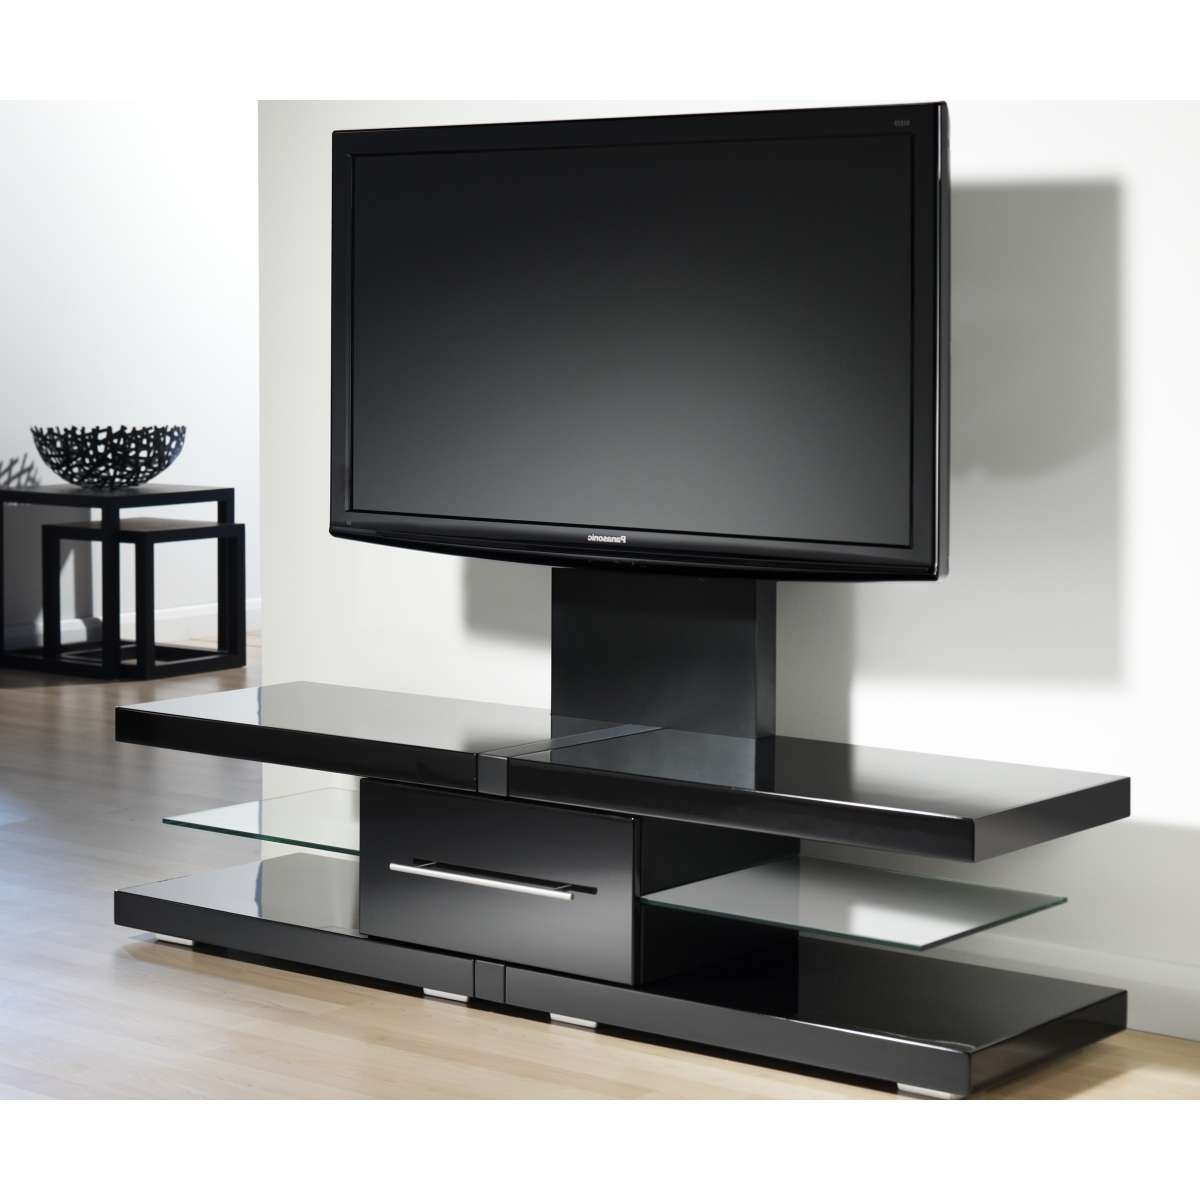 Modern Black Tone Wide Screen Tv Stand With Display Shelves And With Black Modern Tv Stands (View 9 of 15)